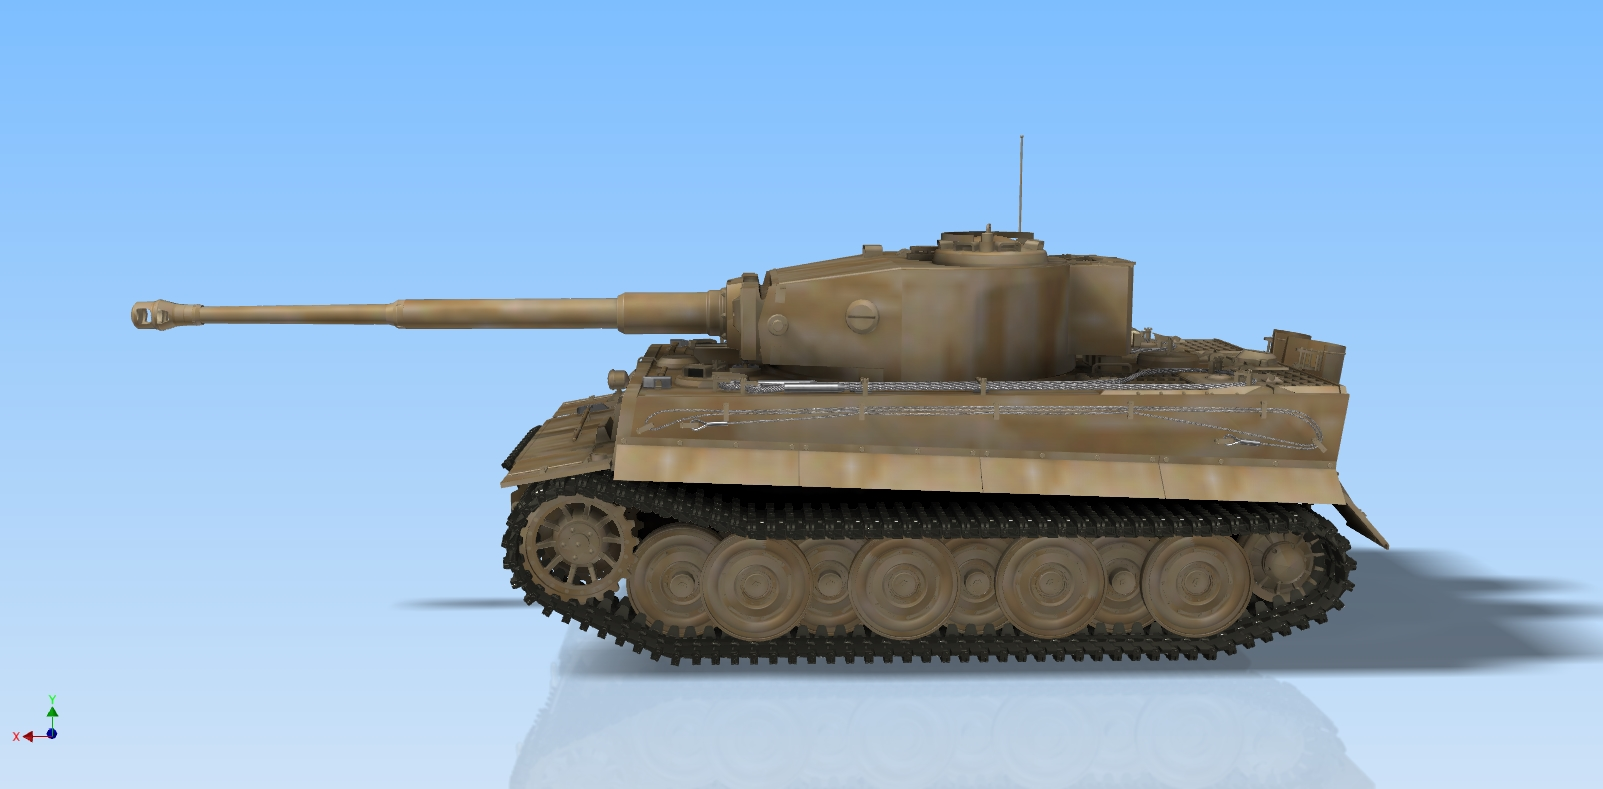 Tank Tiger 1 in STL format for 3D Printing